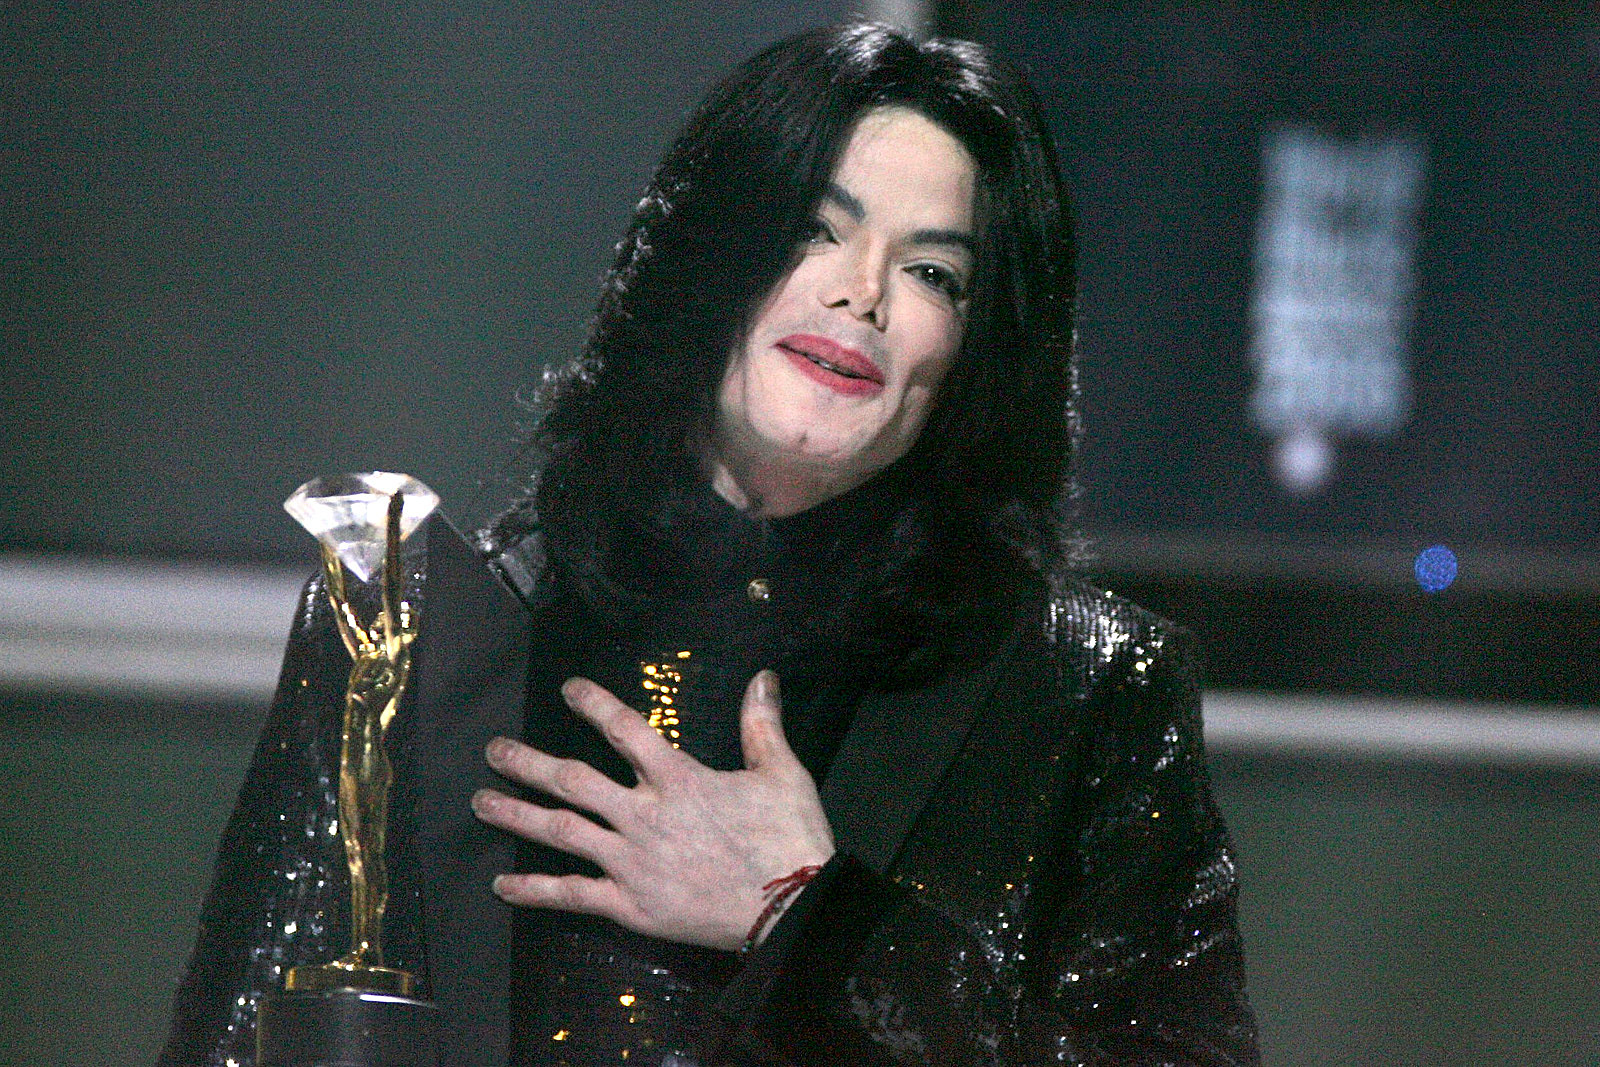 Michael Jackson to Remain in Rock and Roll Hall of Fame